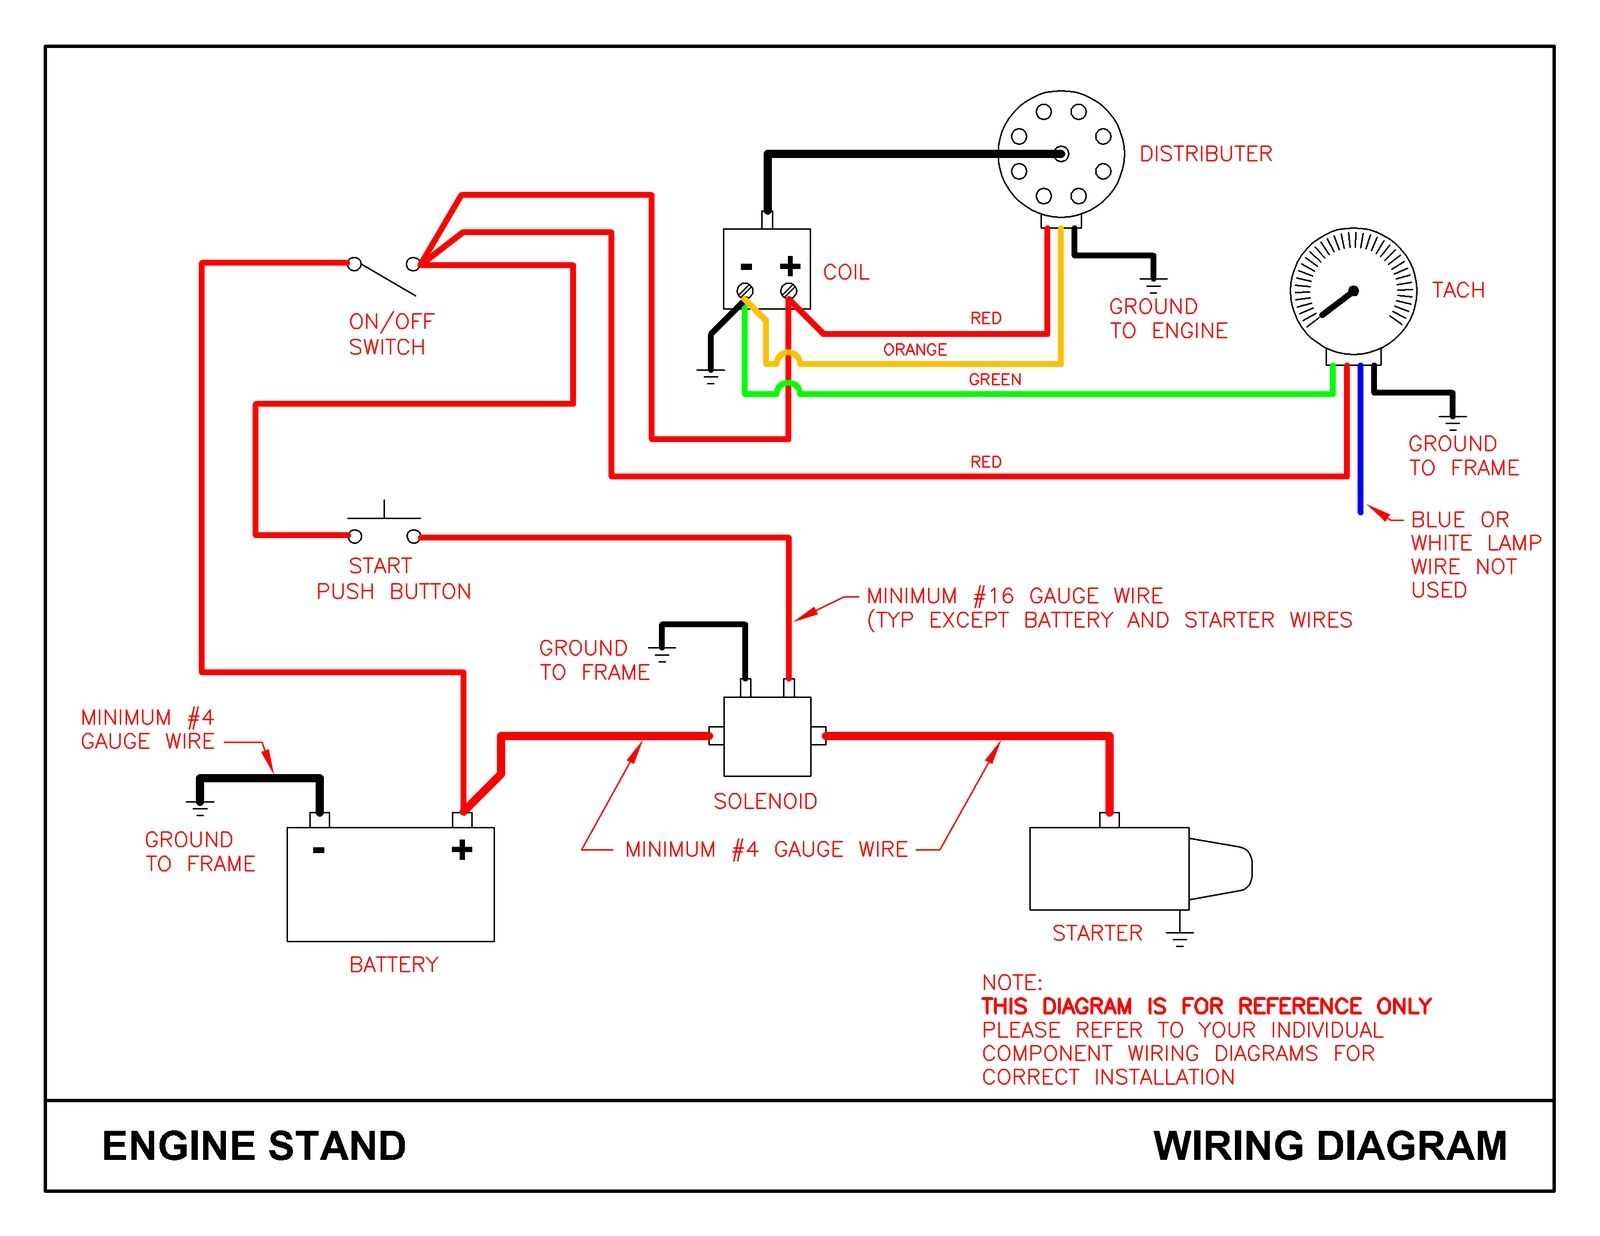 hight resolution of engine start test stand plans ford gm mopar ebay wiring diagram engine stand